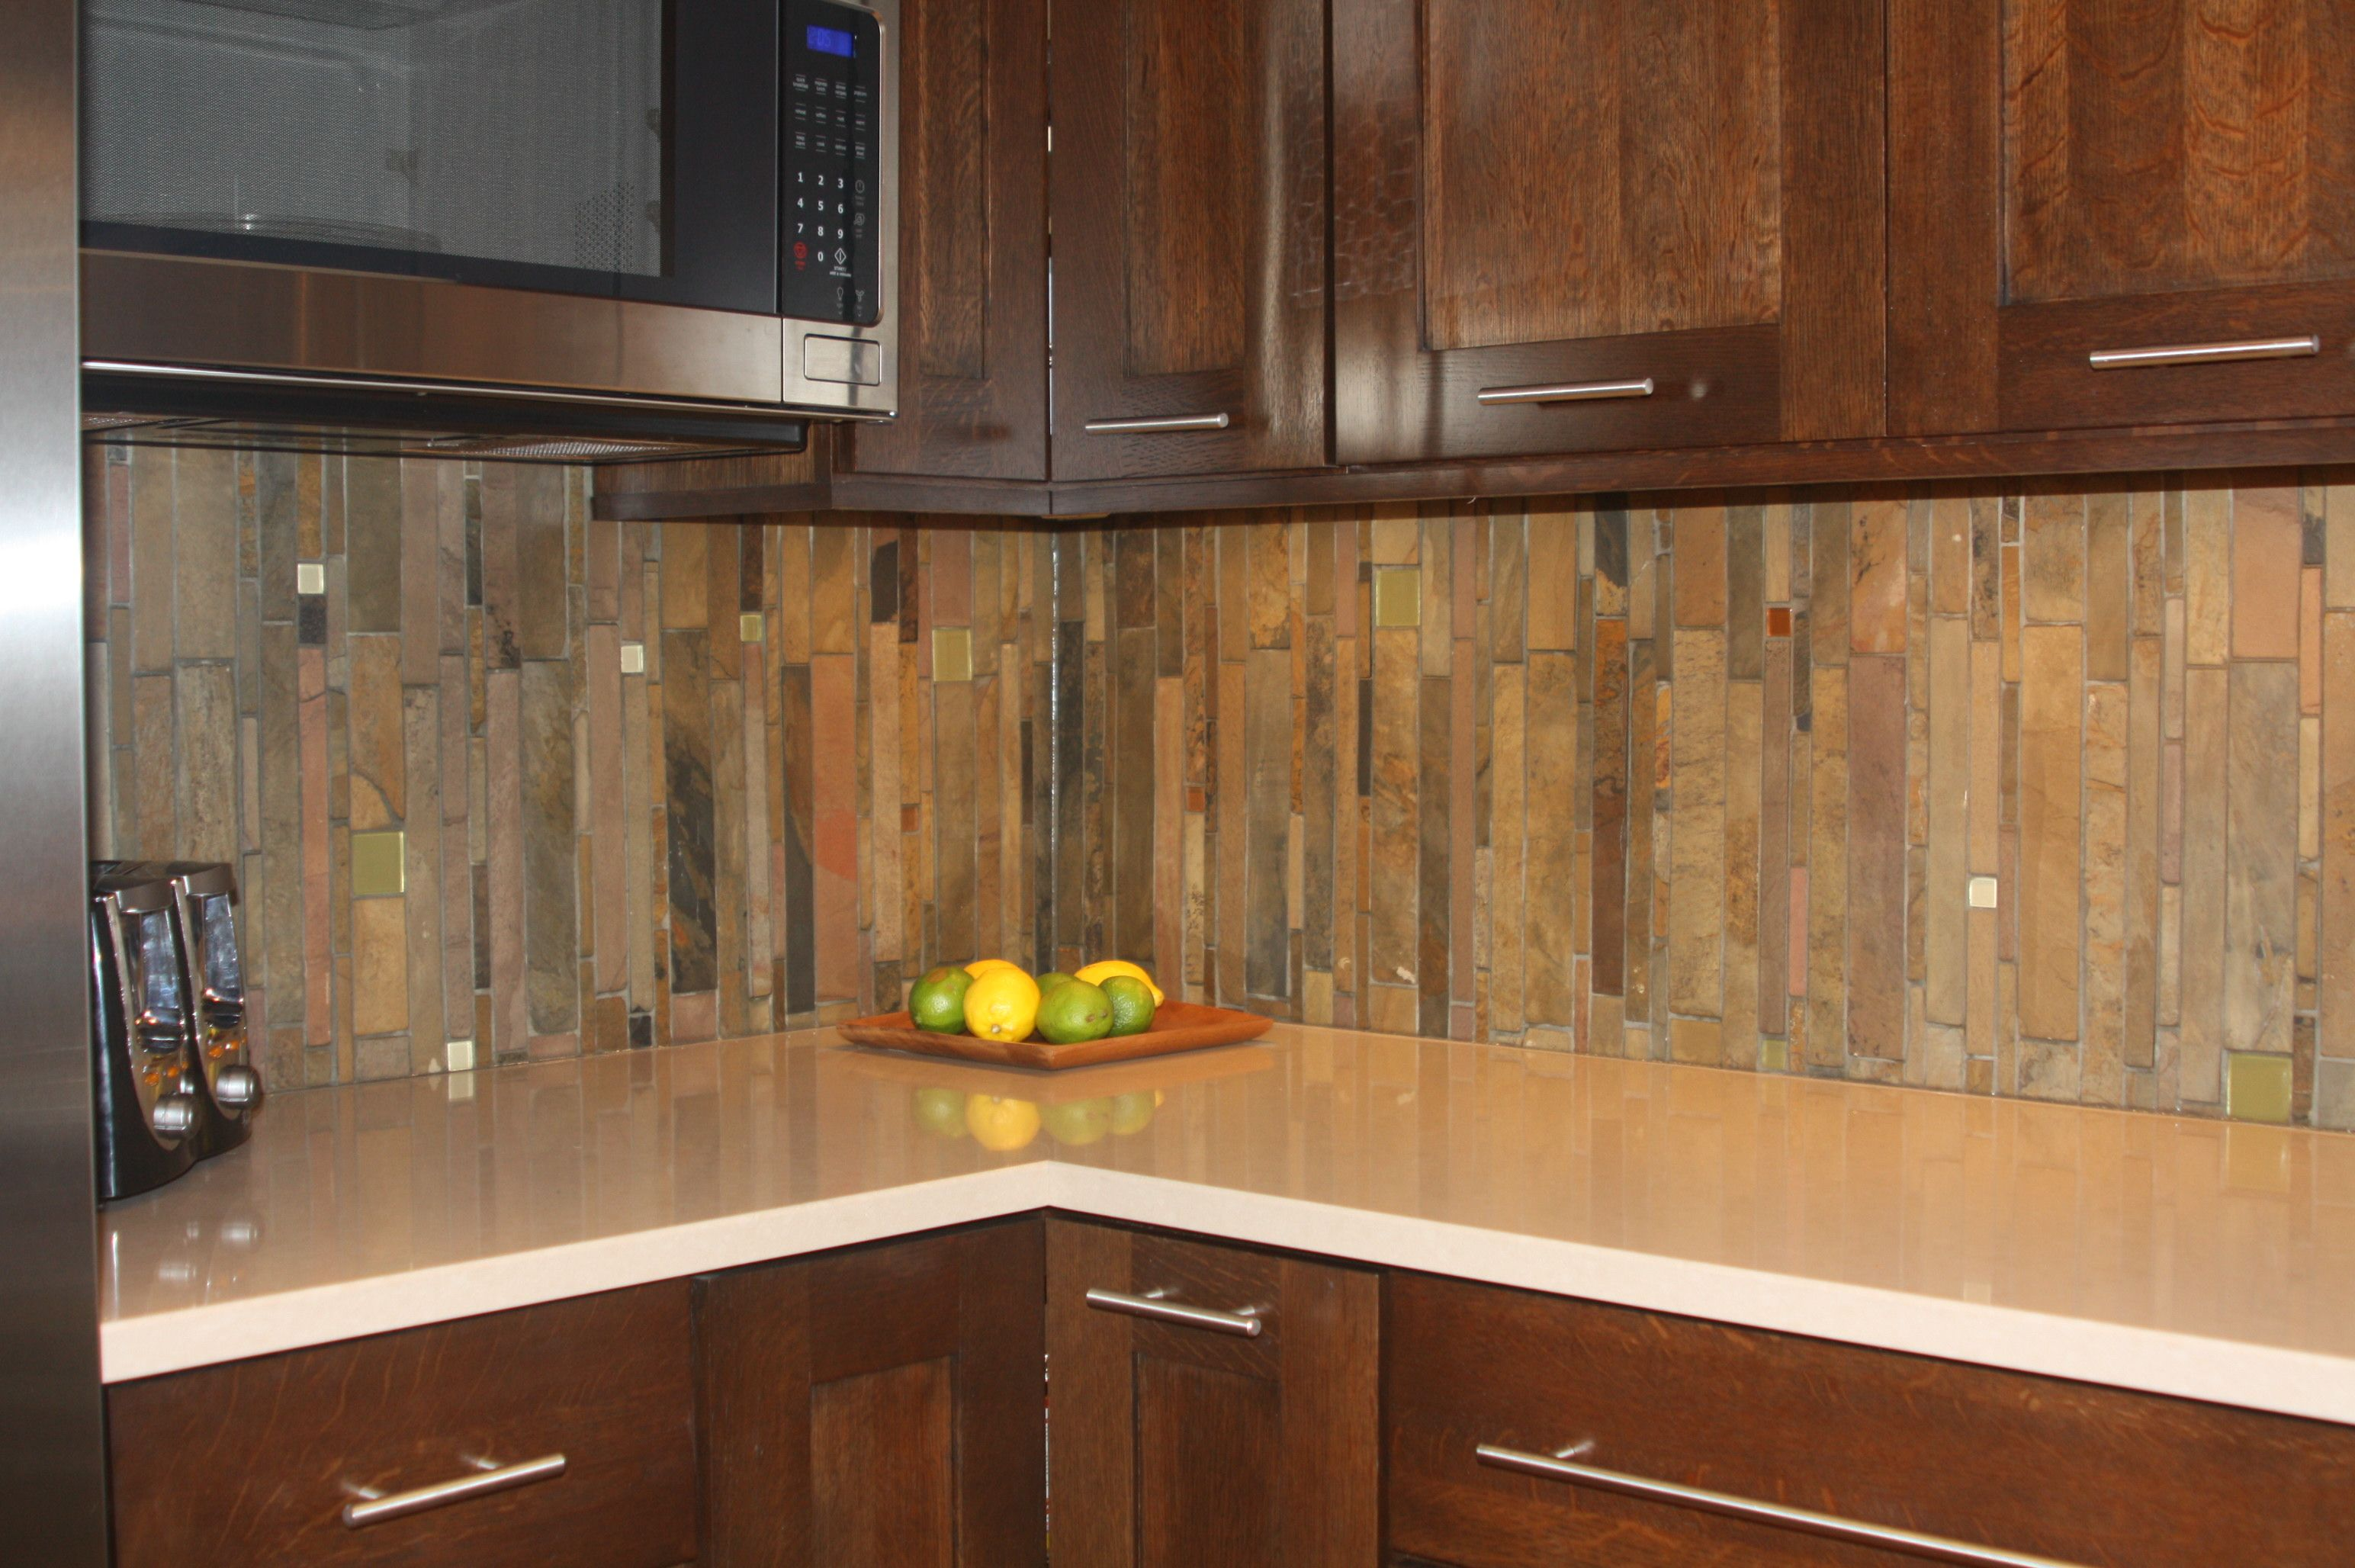 Vertical slate backsplash with a few glass tiles here and there